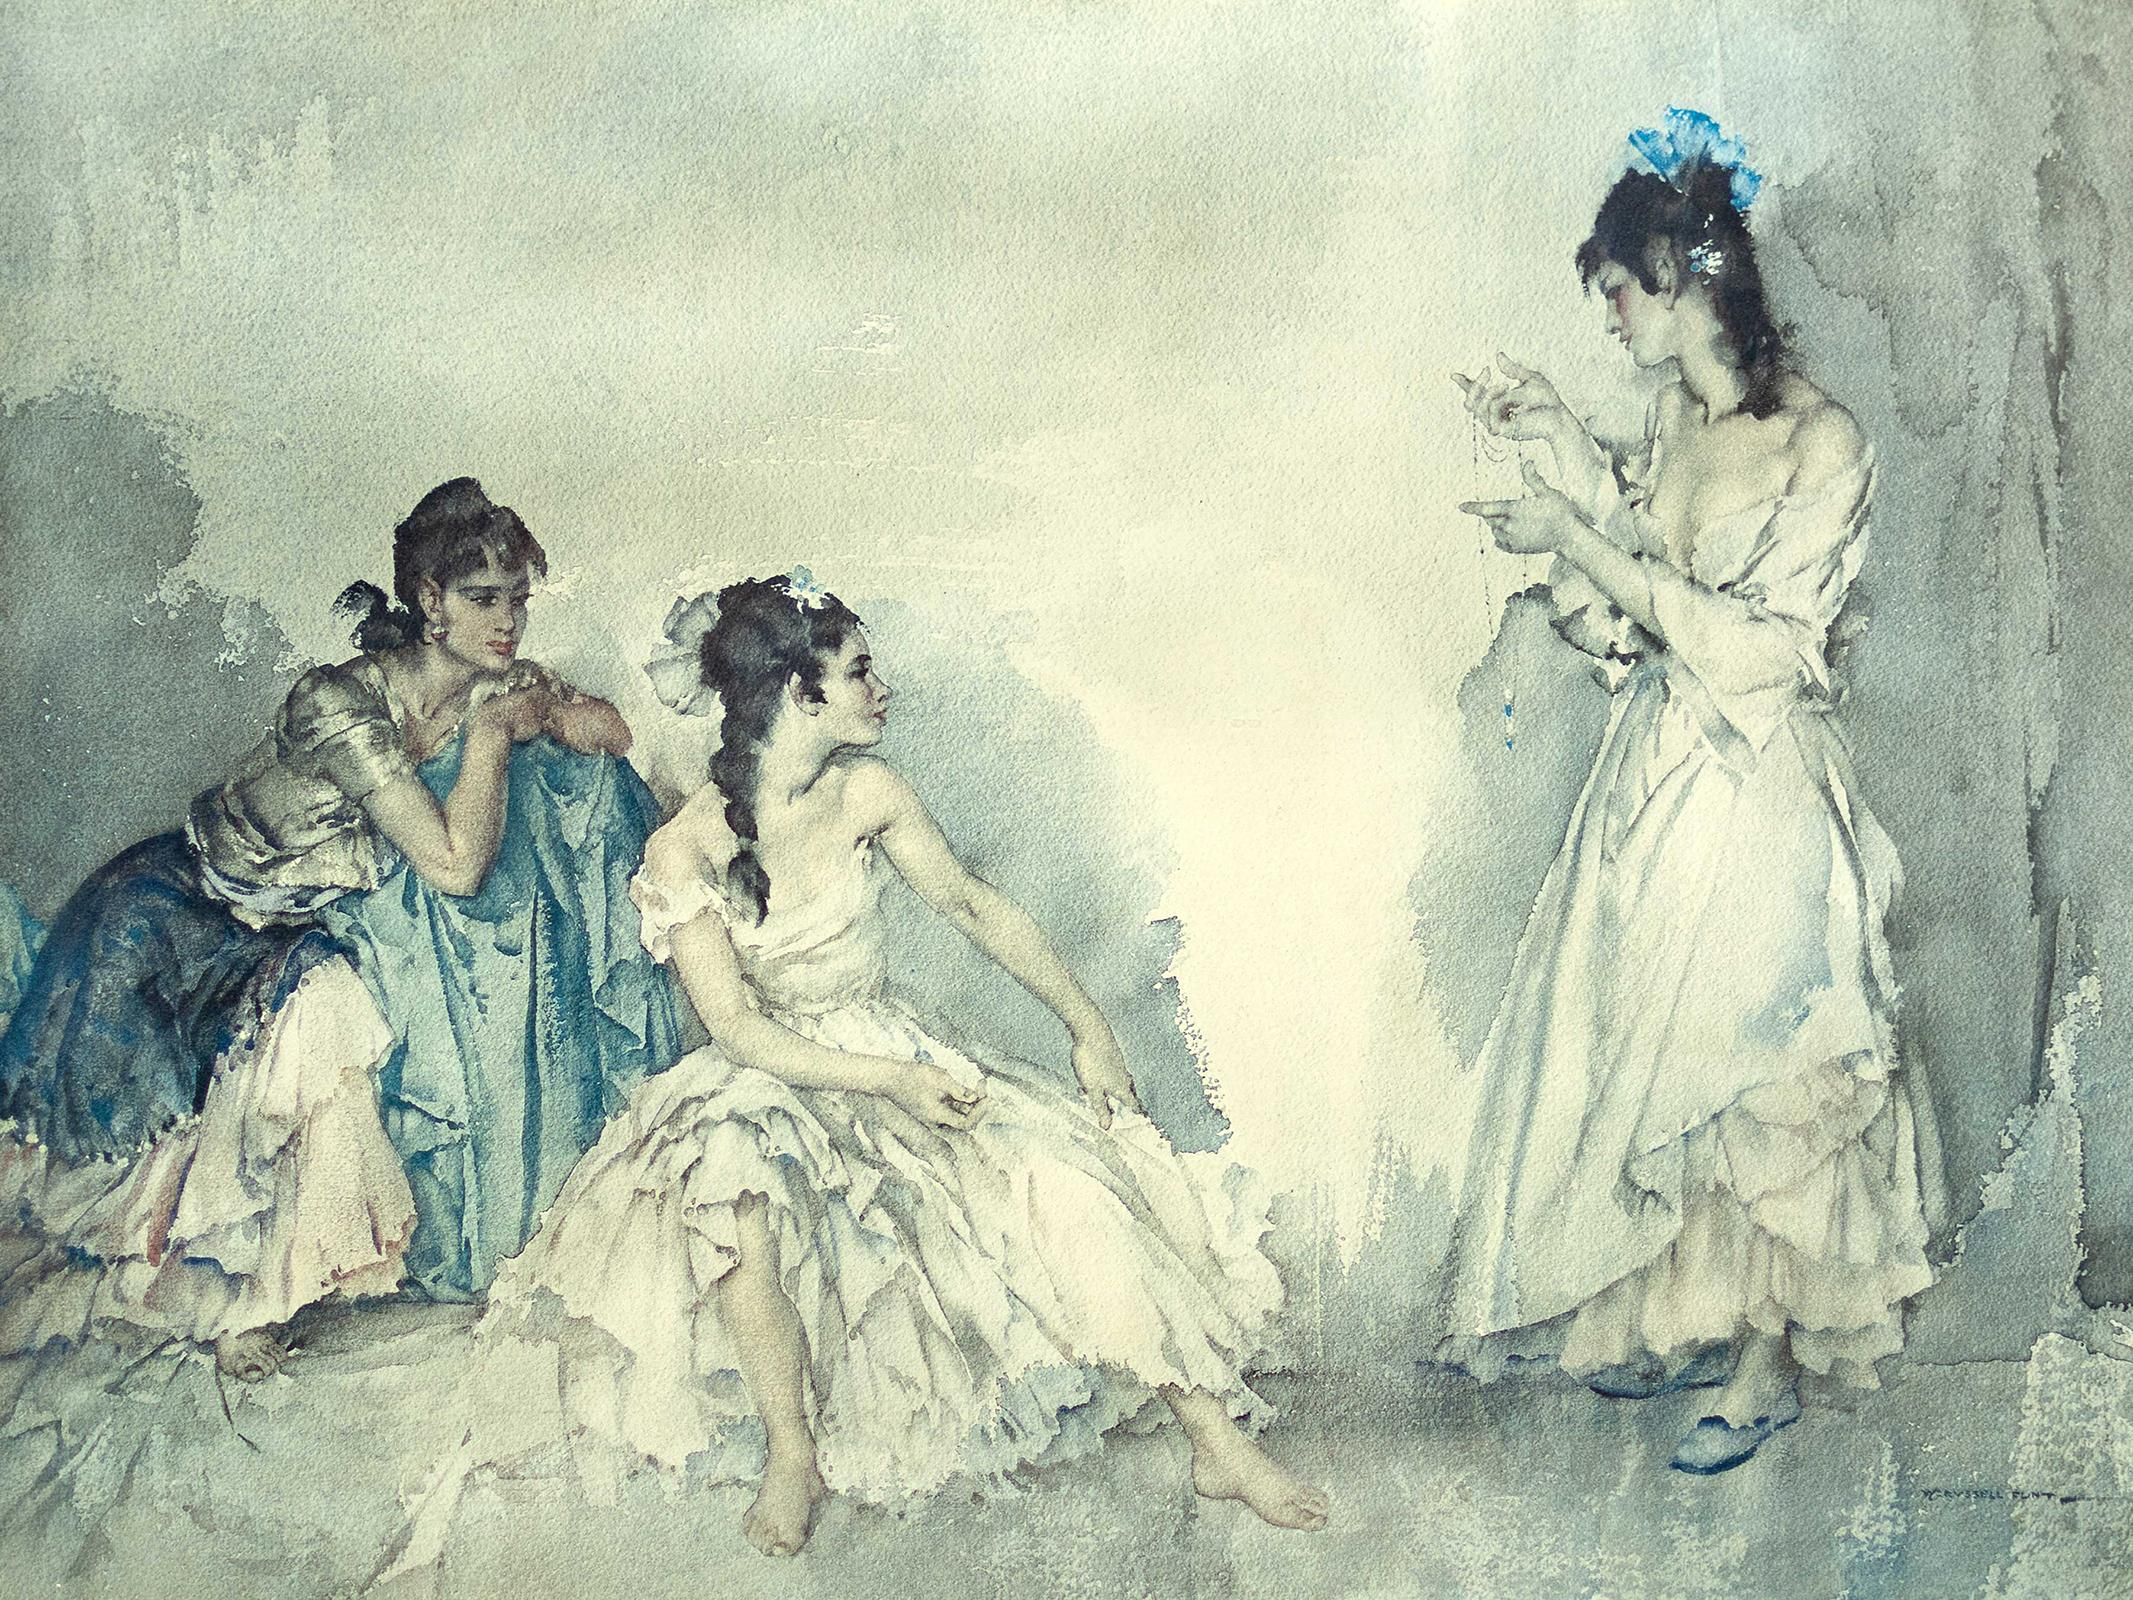 """Sir William Russell Flint (British 1880 - 1969) Photo-Lithograph, """"The Pendant"""", Signed in Pencil, 52 x 71 sheet size"""